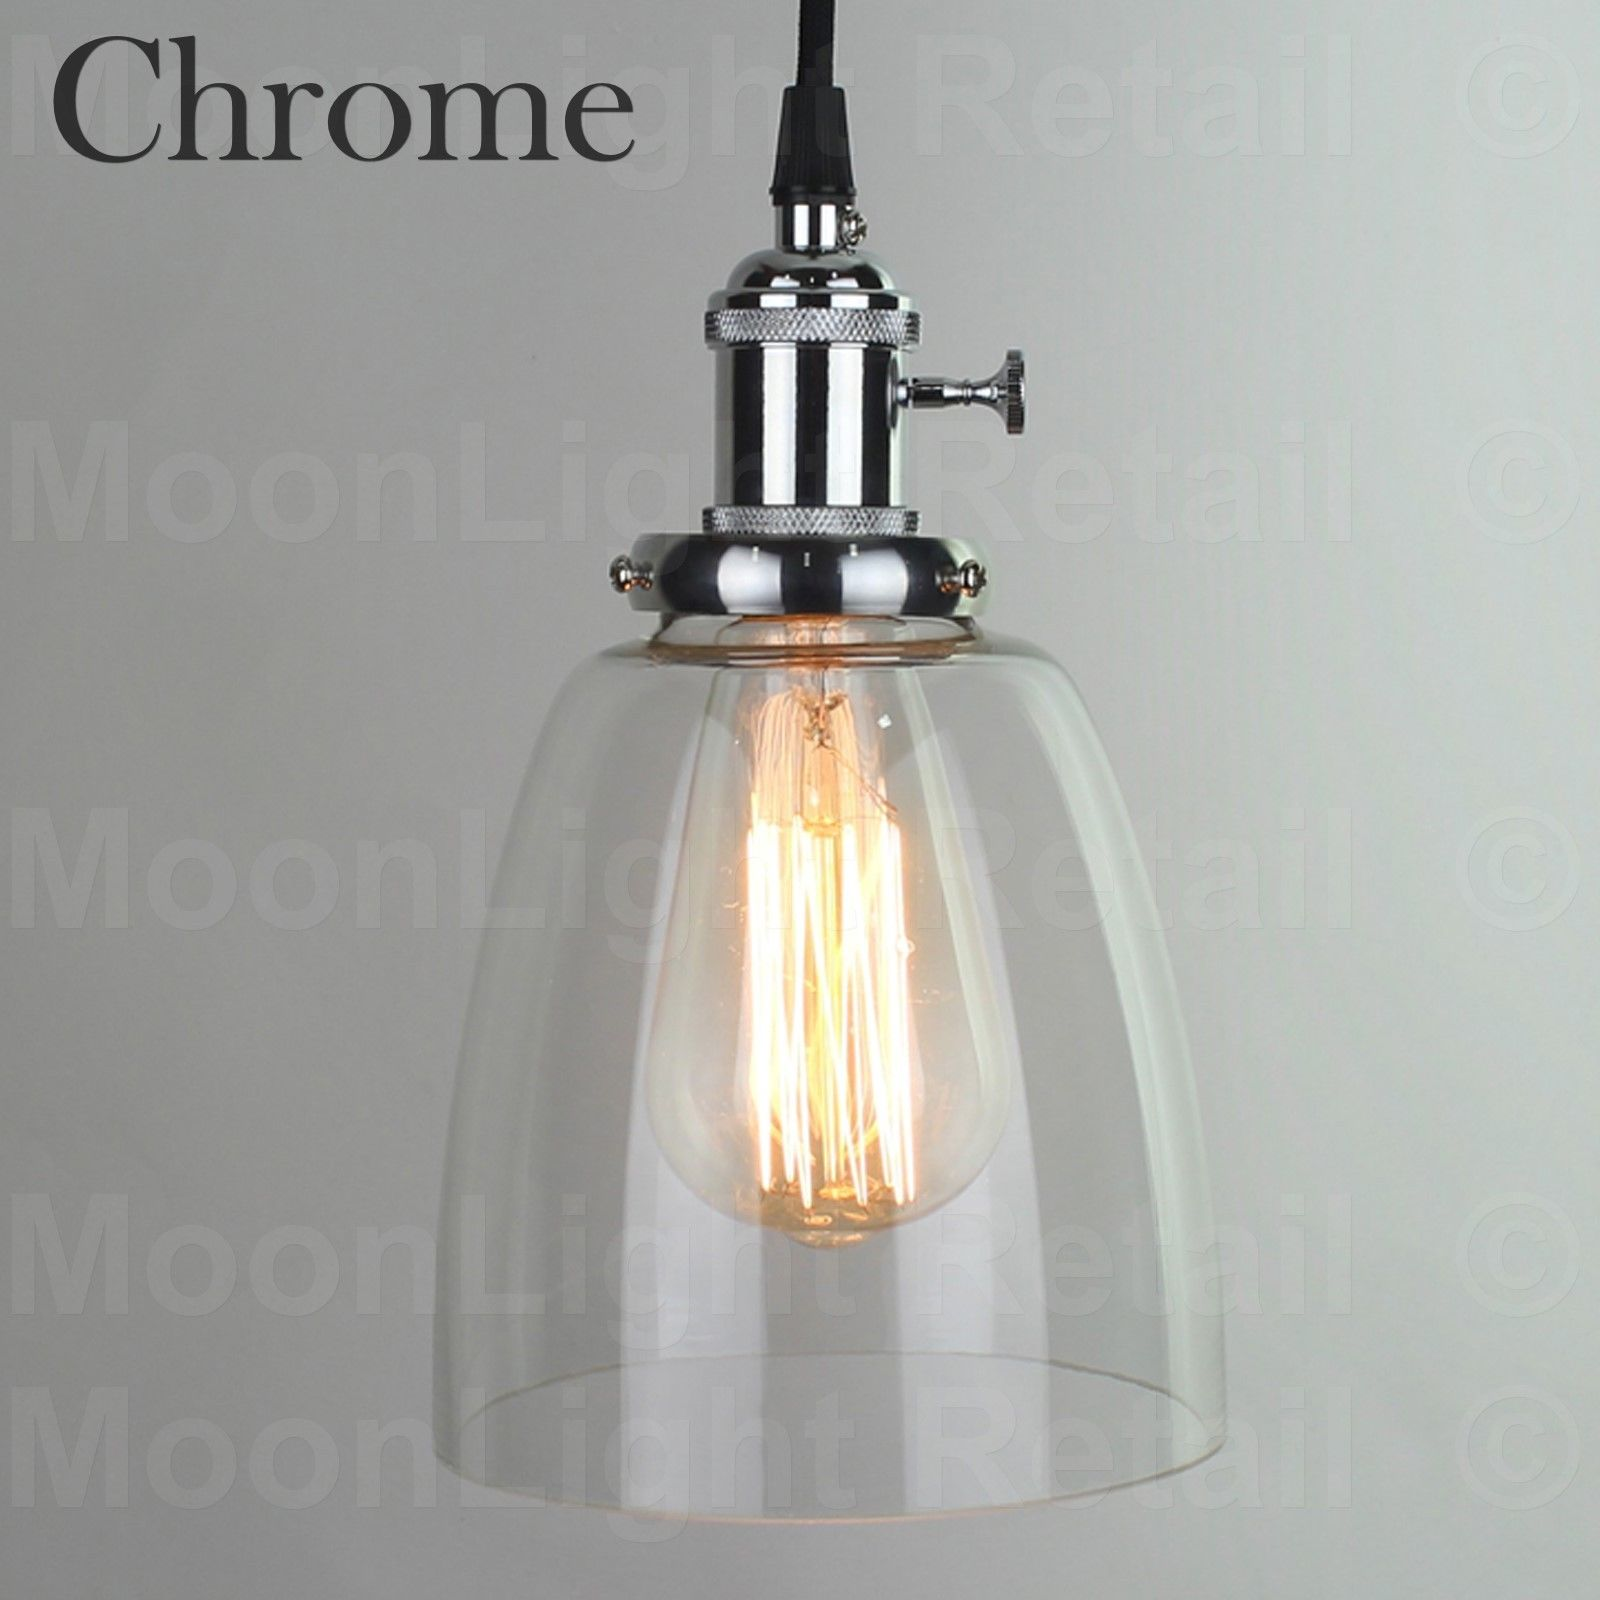 Ceiling Light Shades Vintage Industrial Ceiling Lamp Cafe Glass Pendant Light Shade Lighting Fixture